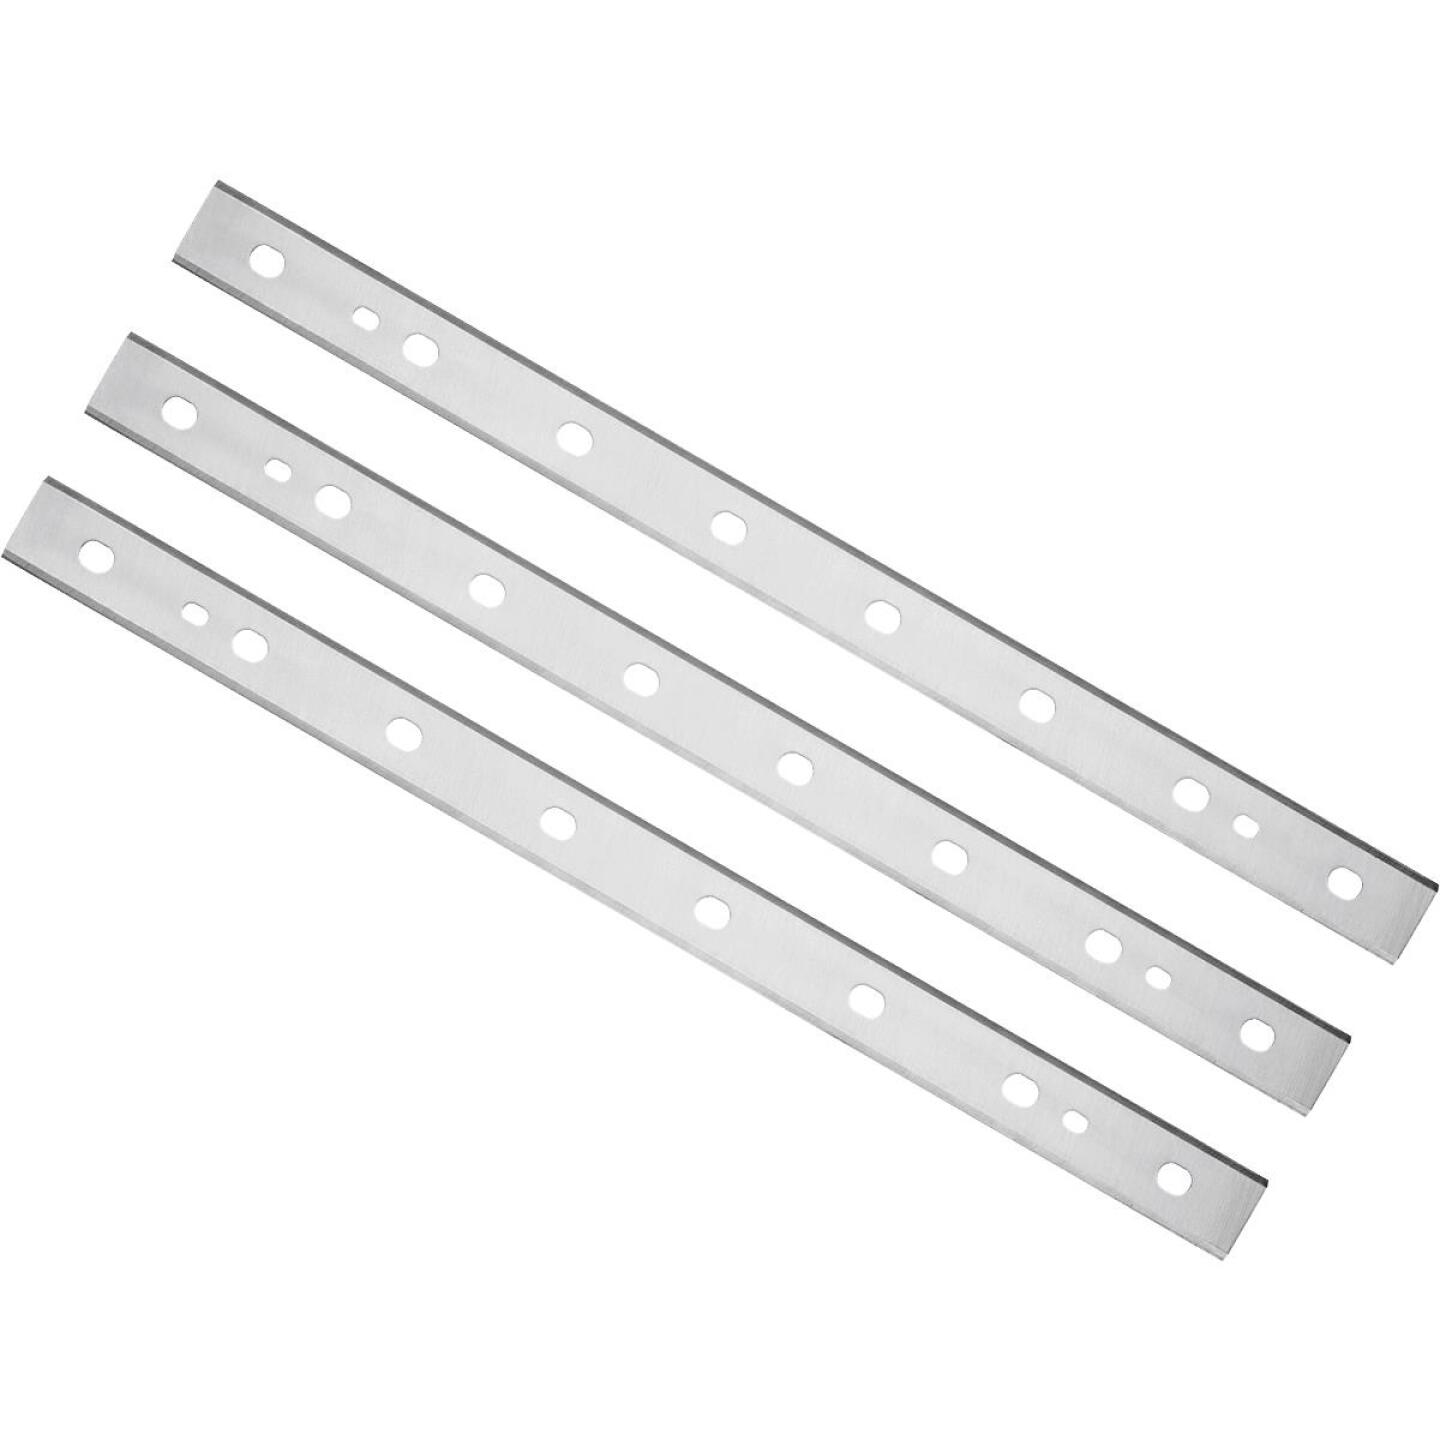 DeWalt 12-1/2 In. High Speed Steel Planer Blade (3-Pack) Image 1